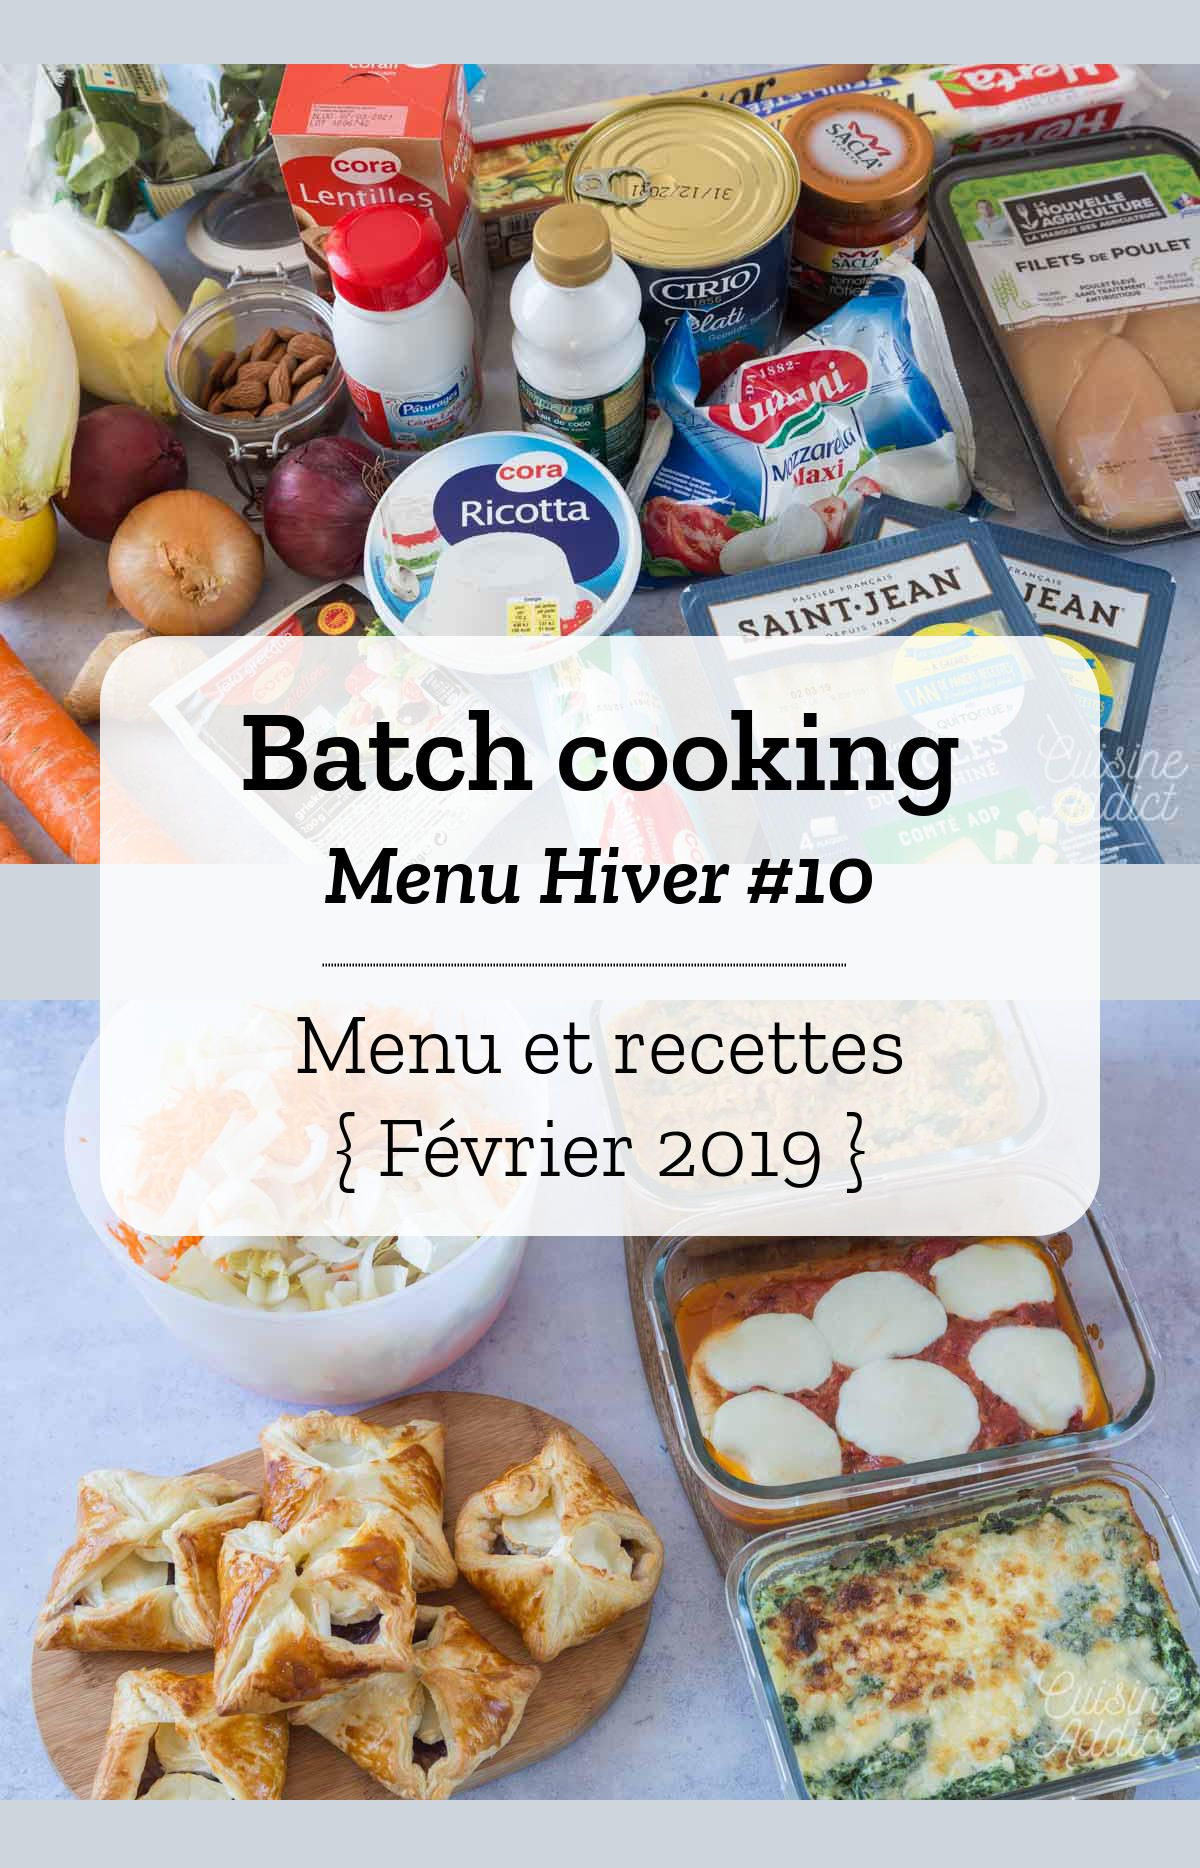 Batch cooking Hiver #10